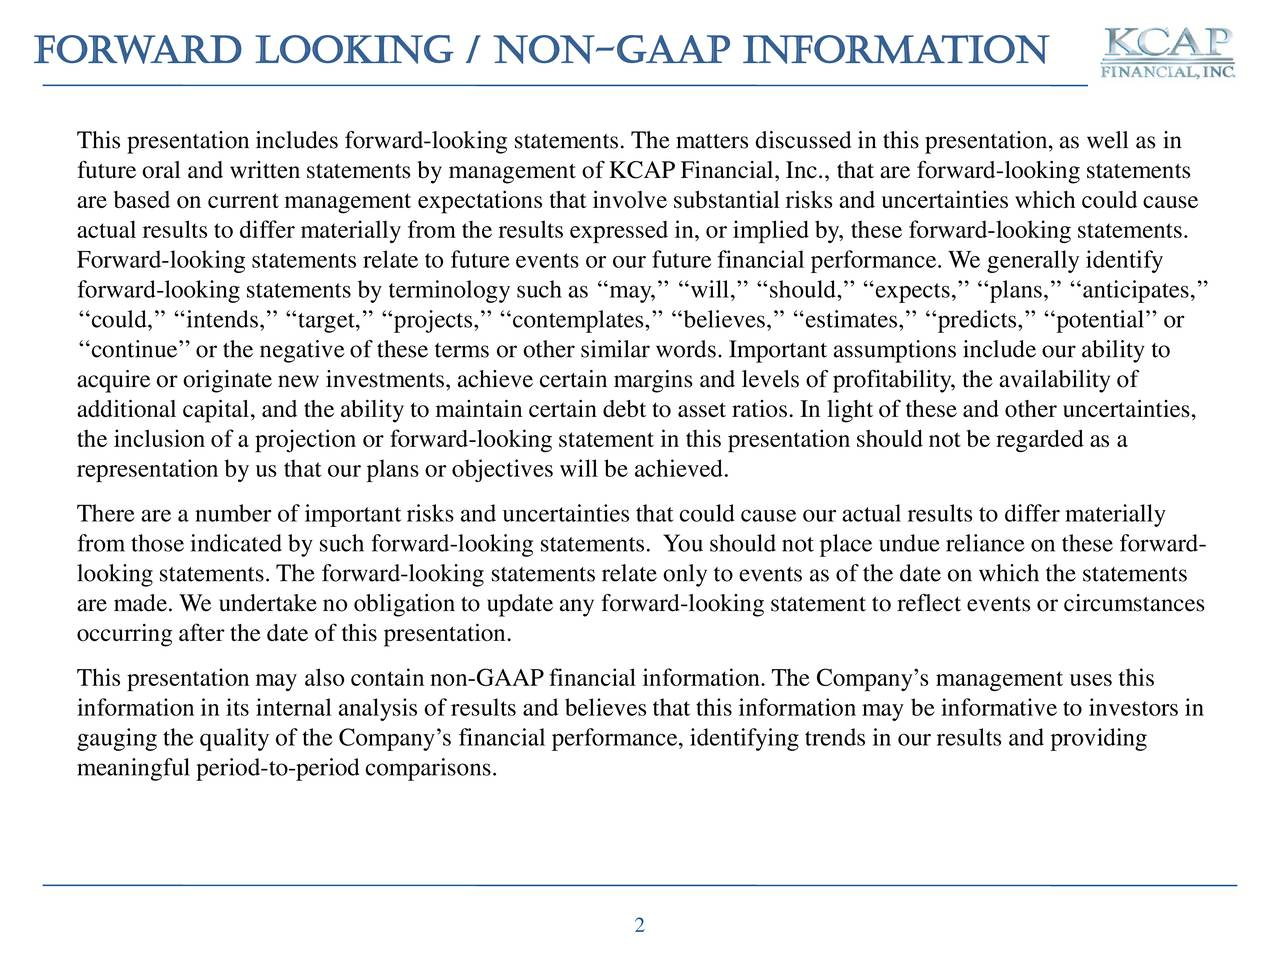 This presentation includes forward-looking statements. The matters discussed in this presentation, as well as in future oral and written statements by management of KCAP Financial, Inc., that are forward-looking statements are based on current management expectations that involve substantial risks and uncertainties which could cause actual results to differ materially from the results expressed in, or implied by, these forward-looking statements. Forward-looking statements relate to future events or our future financial performance. We generally identify forward-looking statements by terminology such as may, will,should,expects,plans,anticipates, could,intends,target,projects,contemplates,believes,estimates,predicts,potential or continueor the negative of these terms or other similar words. Important assumptions include our ability to acquire or originate new investments, achieve certain margins and levels of profitability, the availability of additional capital, and the ability to maintain certain debt to asset ratios. In light of these and other uncertainties, the inclusion of a projection or forward-looking statement in this presentation should not be regarded as a representation by us that our plans or objectives will be achieved. There are a number of important risks and uncertainties that could cause our actual results to differ materially from those indicated by such forward-looking statements. You should not place undue reliance on these forward- looking statements. The forward-looking statements relate only to events as of the date on which the statements are made. We undertake no obligation to update any forward-looking statement to reflect events or circumstances occurring after the date of this presentation. This presentation may also contain non-GAAPfinancial information.The Companys management uses this information in its internal analysis of results and believes that this information may be informative to investors in gauging the quality of the Companys financial performance, identifying trends in our results and providing meaningful period-to-period comparisons. 2